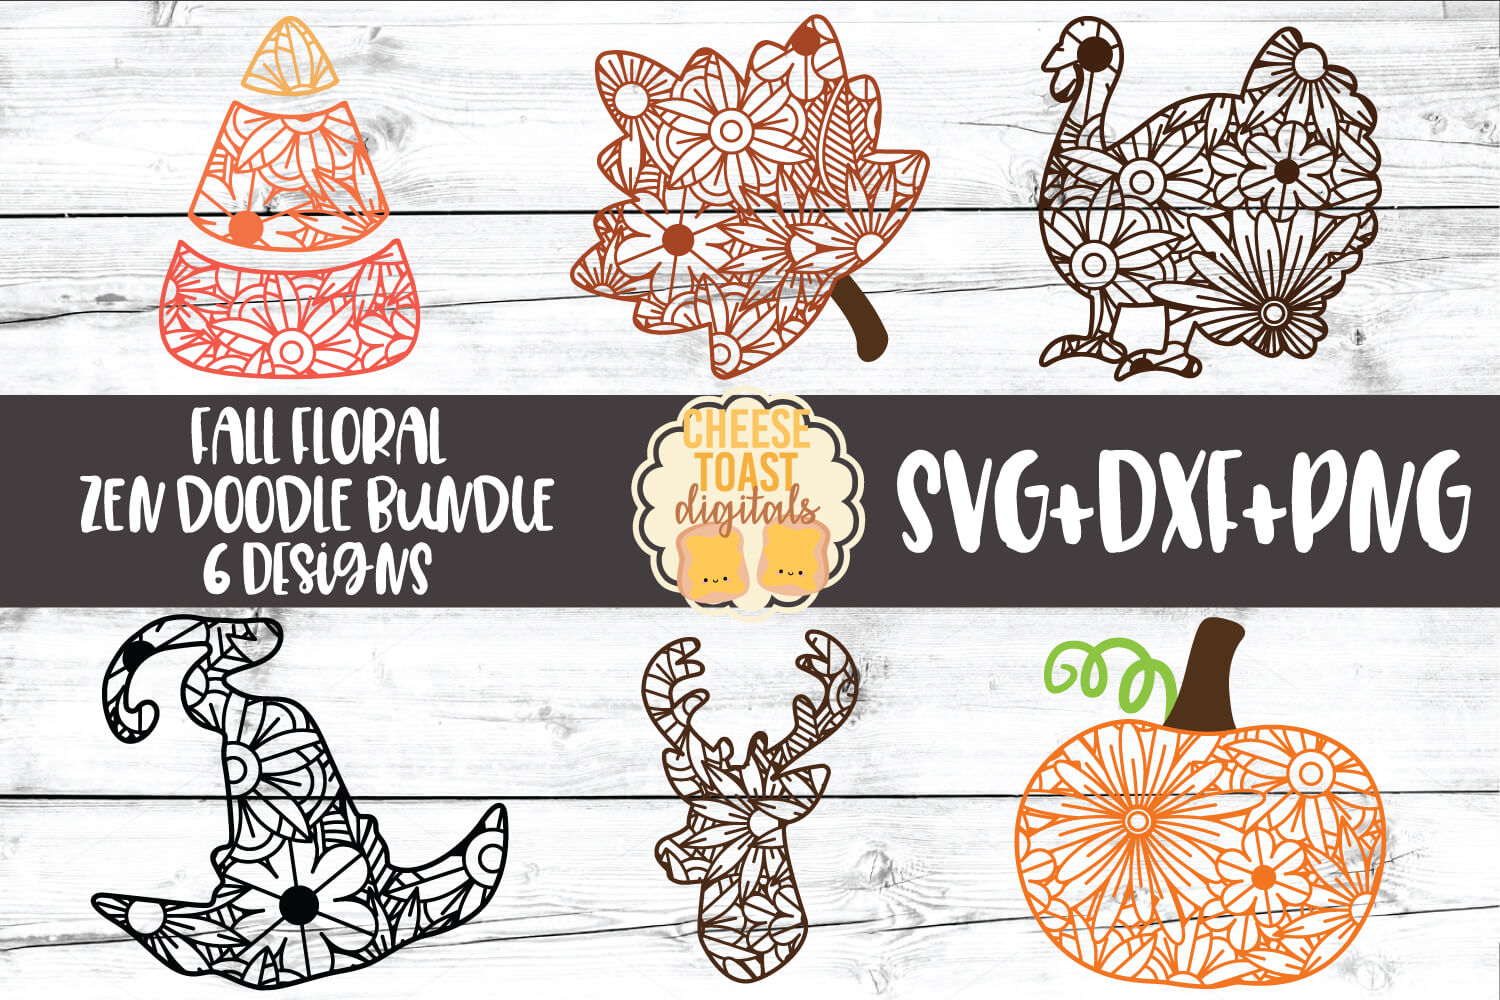 Fall Floral Zen Doodle Art Bundle - 6 Designs